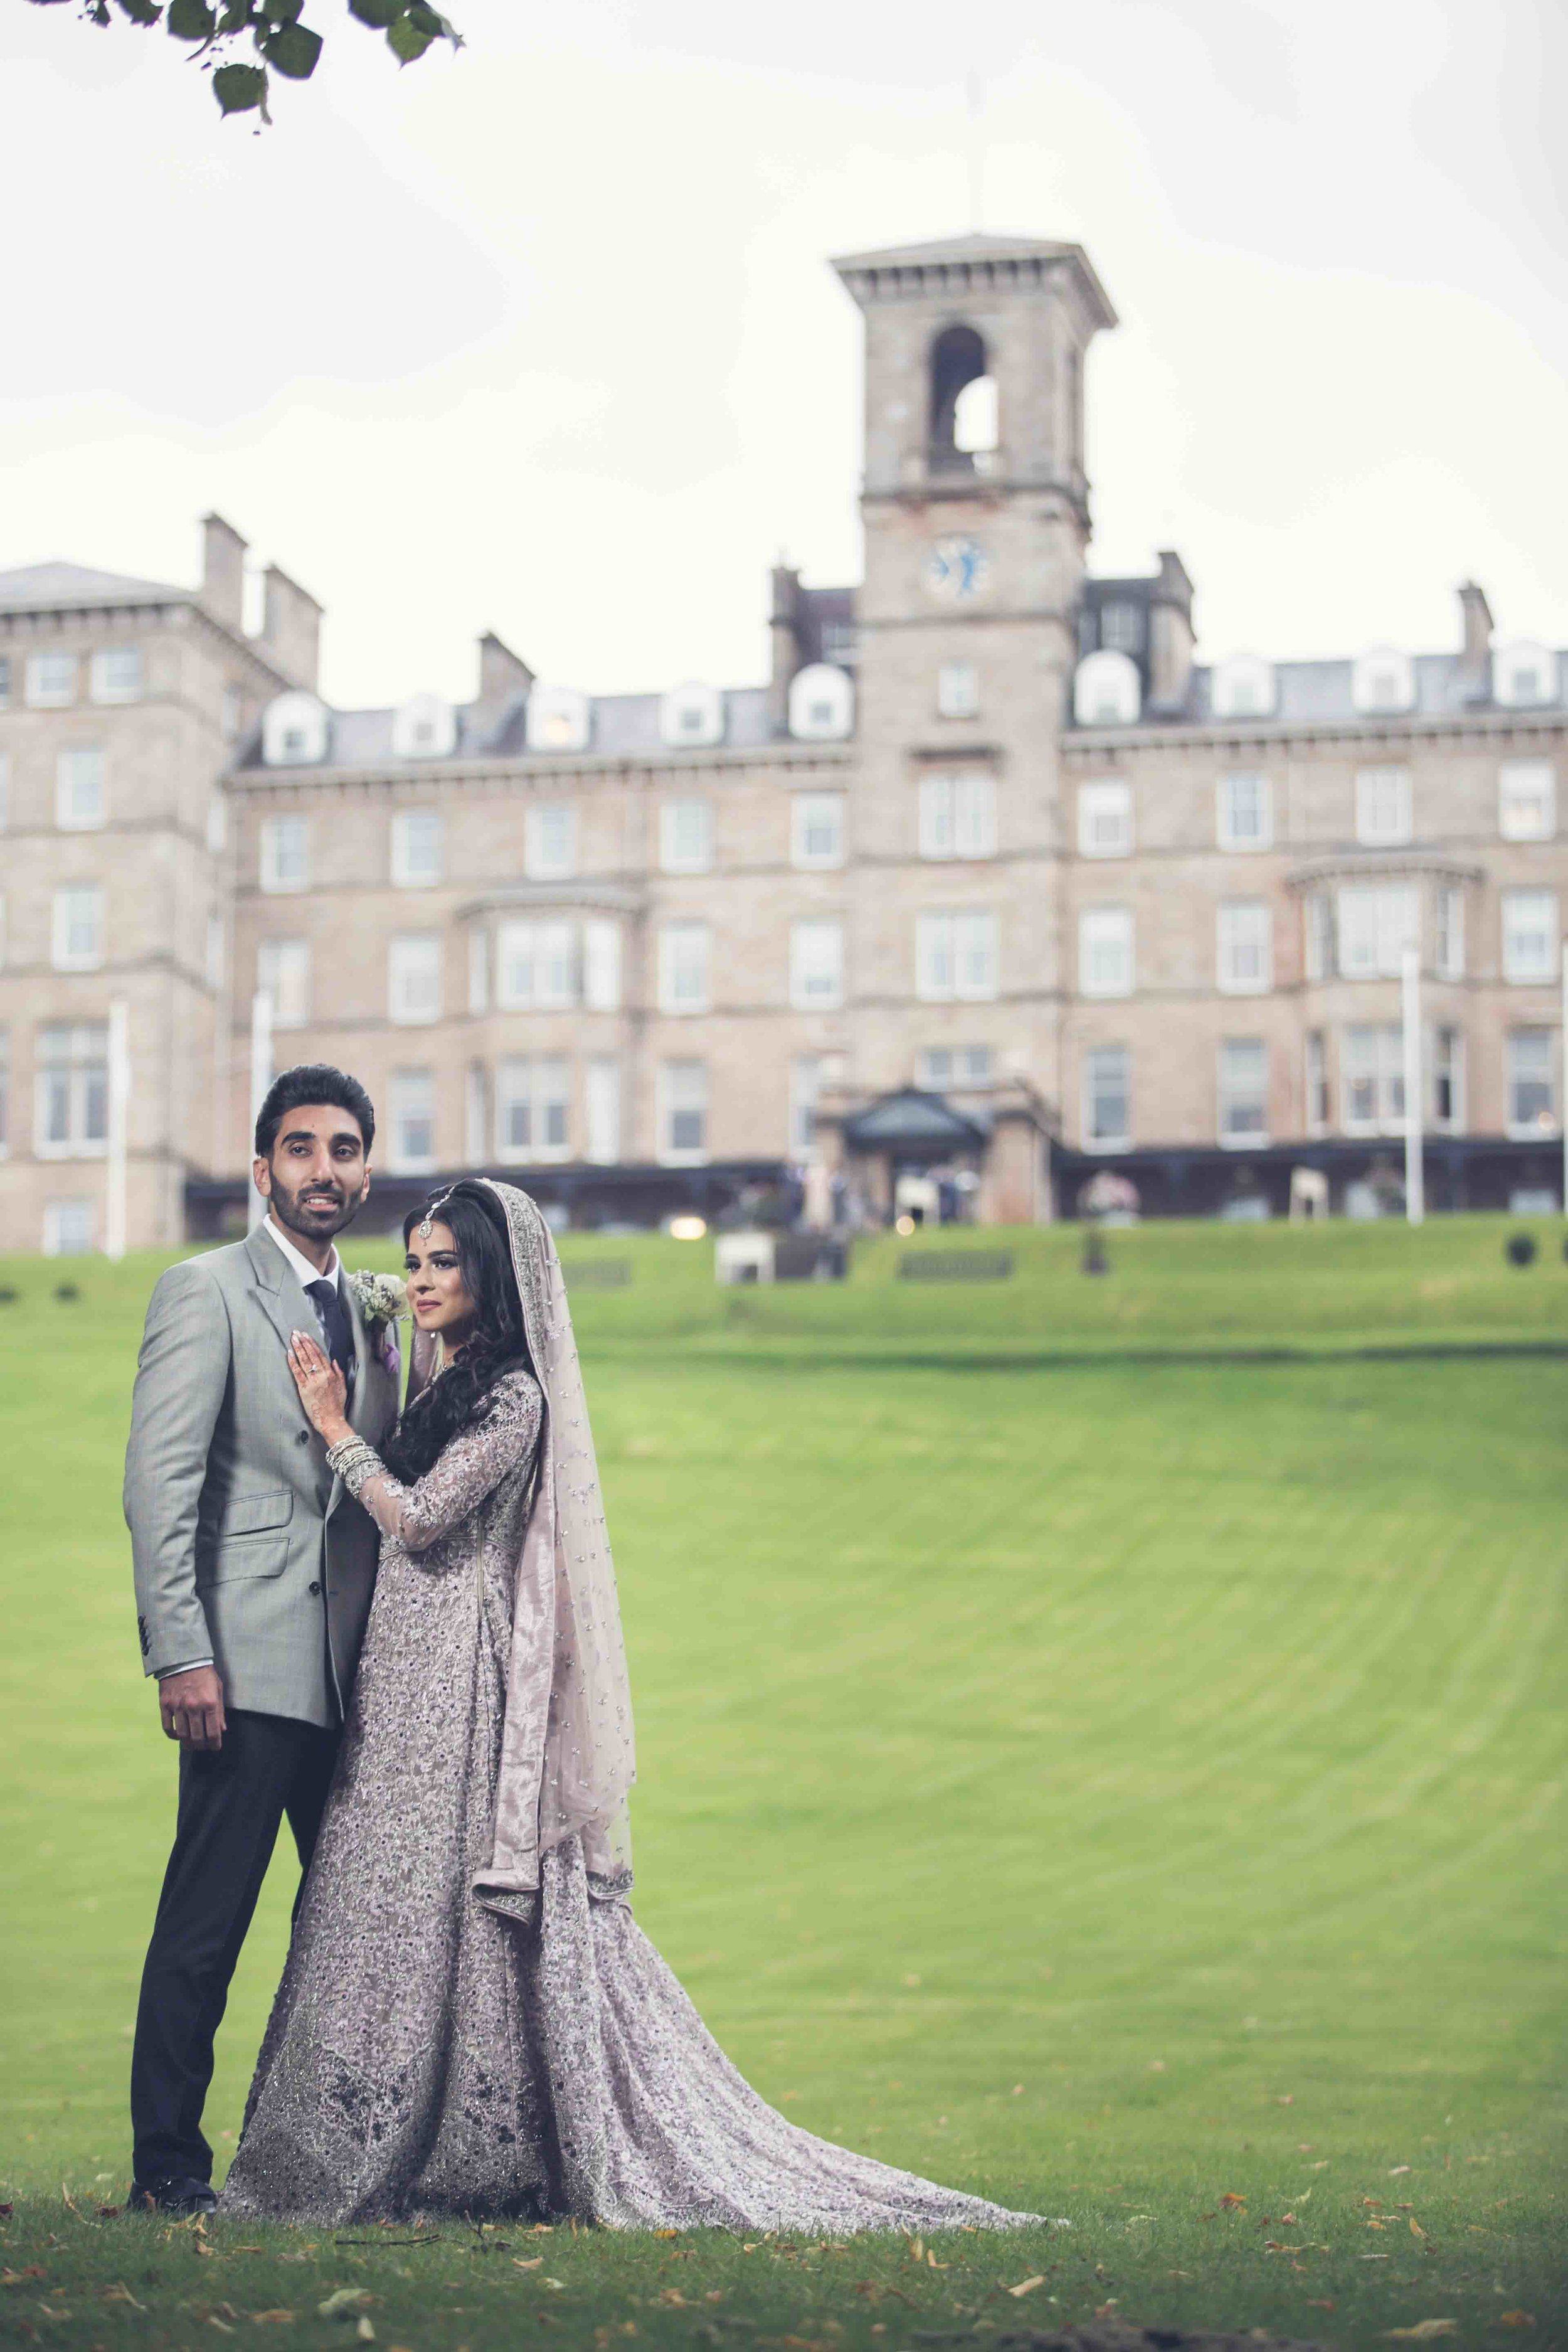 Opu Sultan Photography Asian wedding photography scotland edinburgh glasgow manchester birmingham london-302.jpg